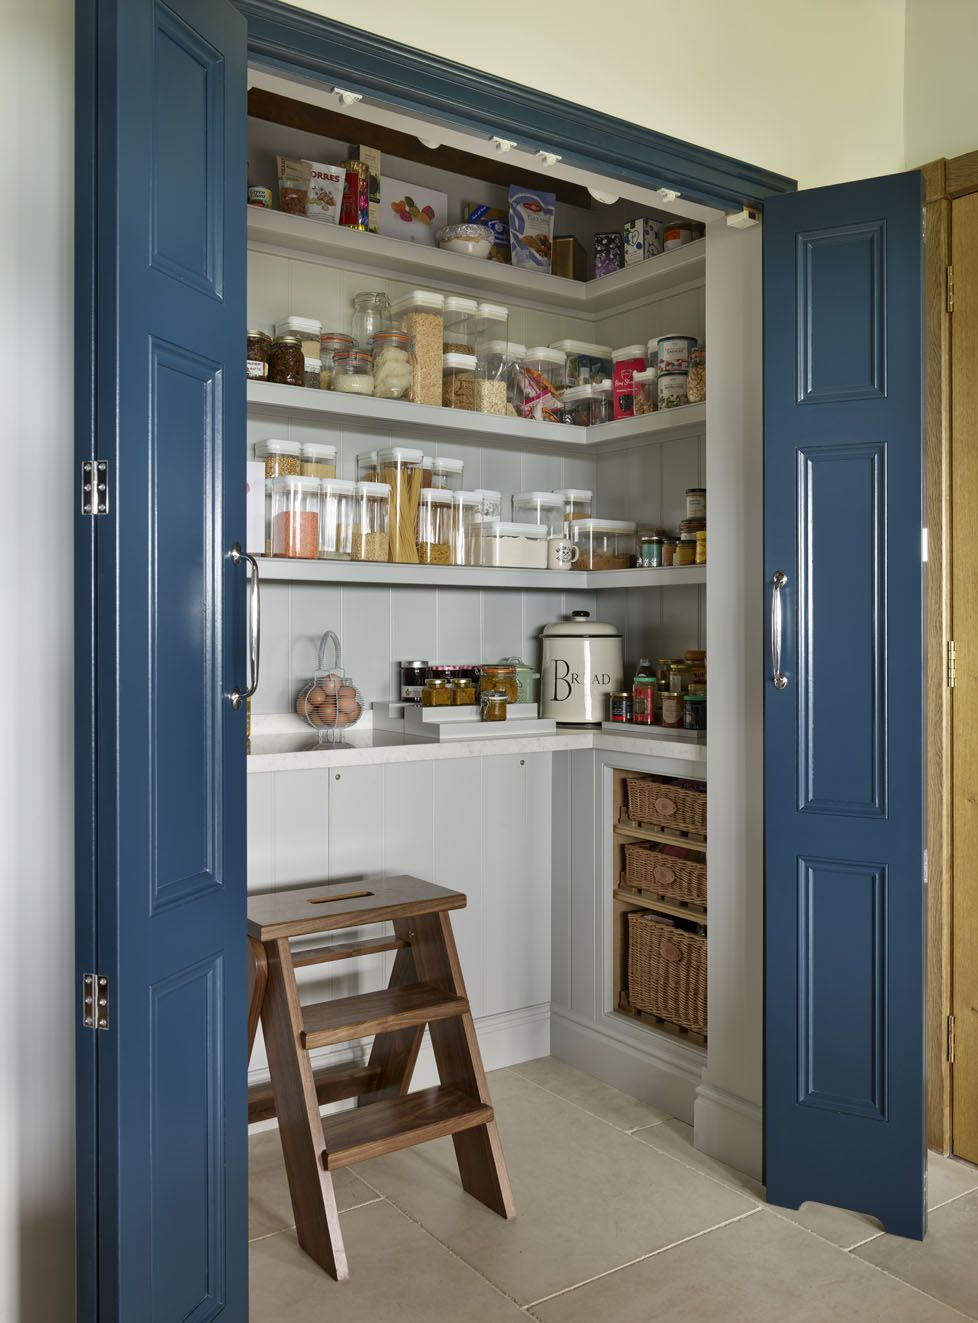 kitchen storage ideas 27 solutions for an organised space real homes in 2020 pantry room on kitchen organization layout id=51050